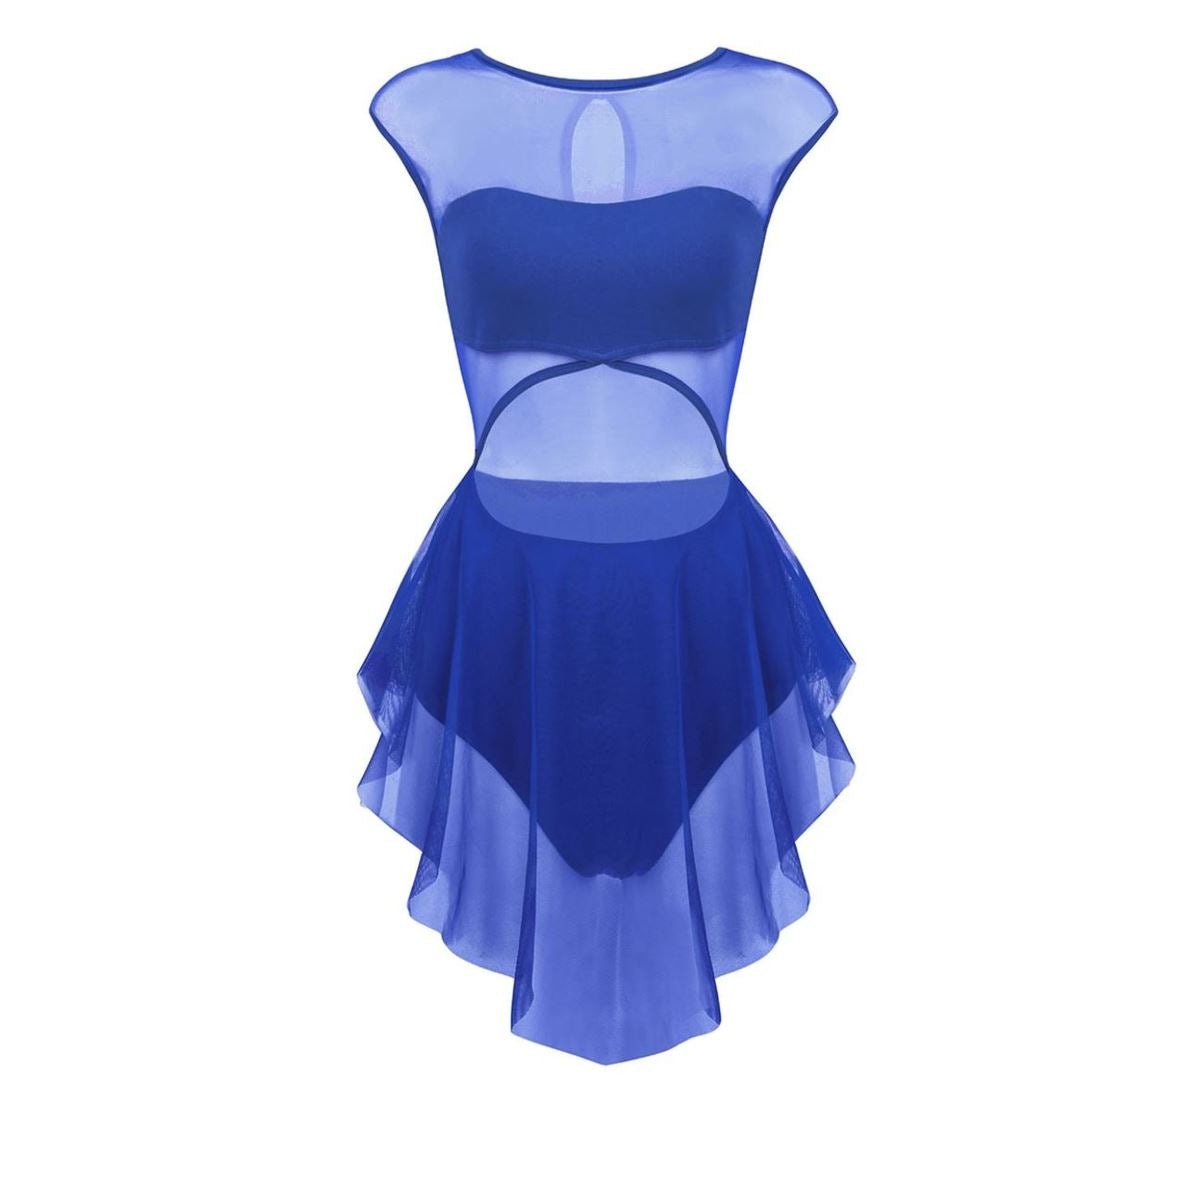 Blue in colour, front view of women's leotard, front cut out design, mesh skirt attached. Pas de bourree dancewear. Pasdebourreedancewear.